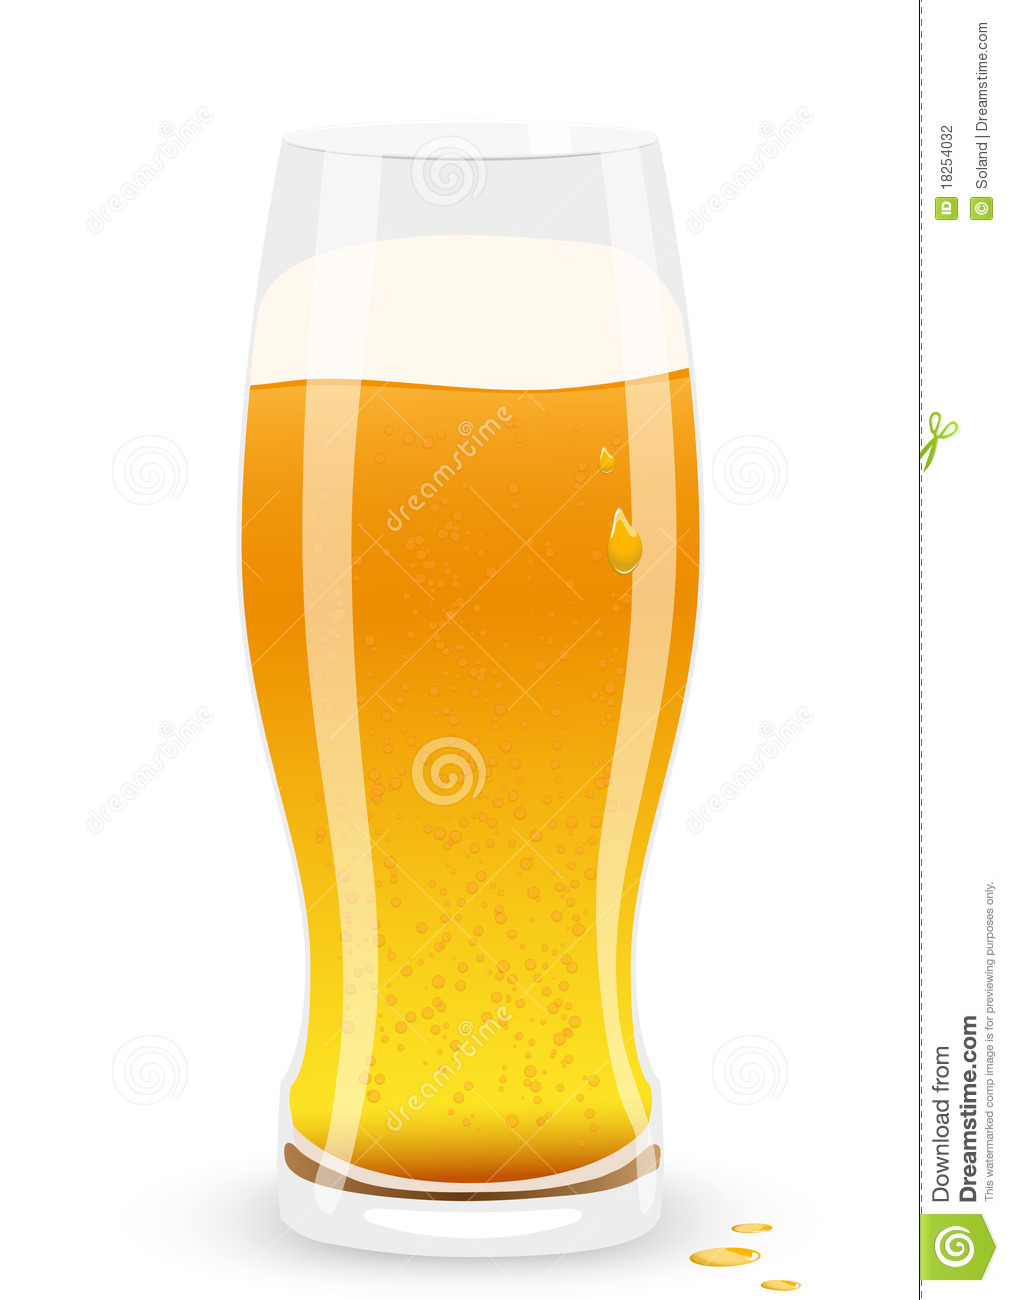 Lager Beer. Vector Illustration. Stock Photography - Image: 18254032